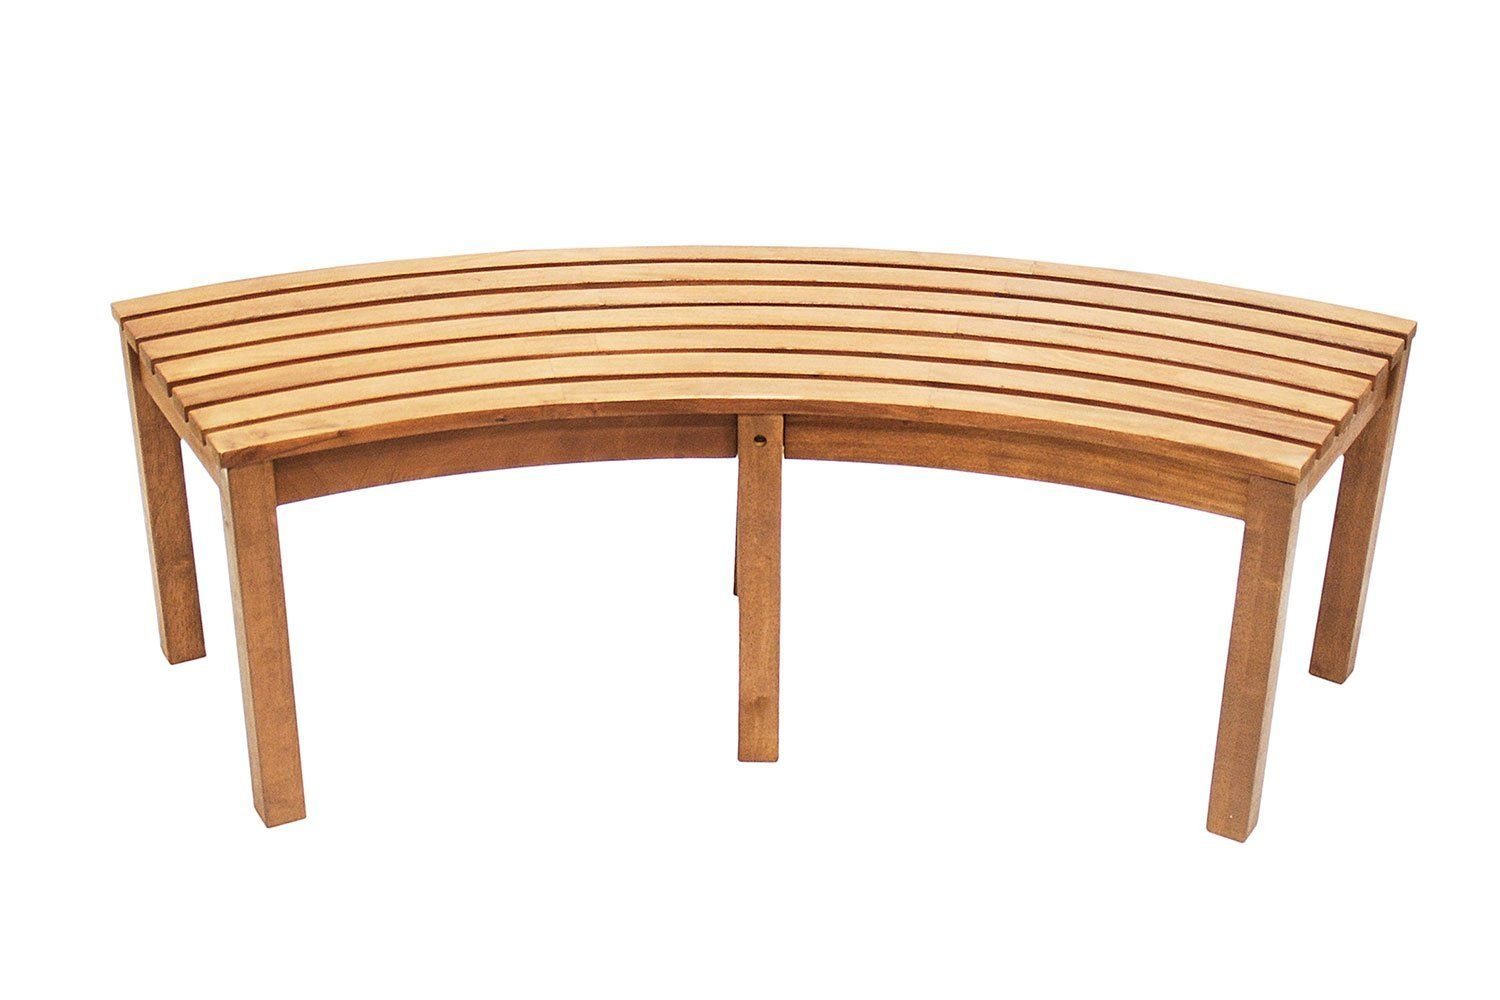 amazon com achla designs curved backless bench patio lawn